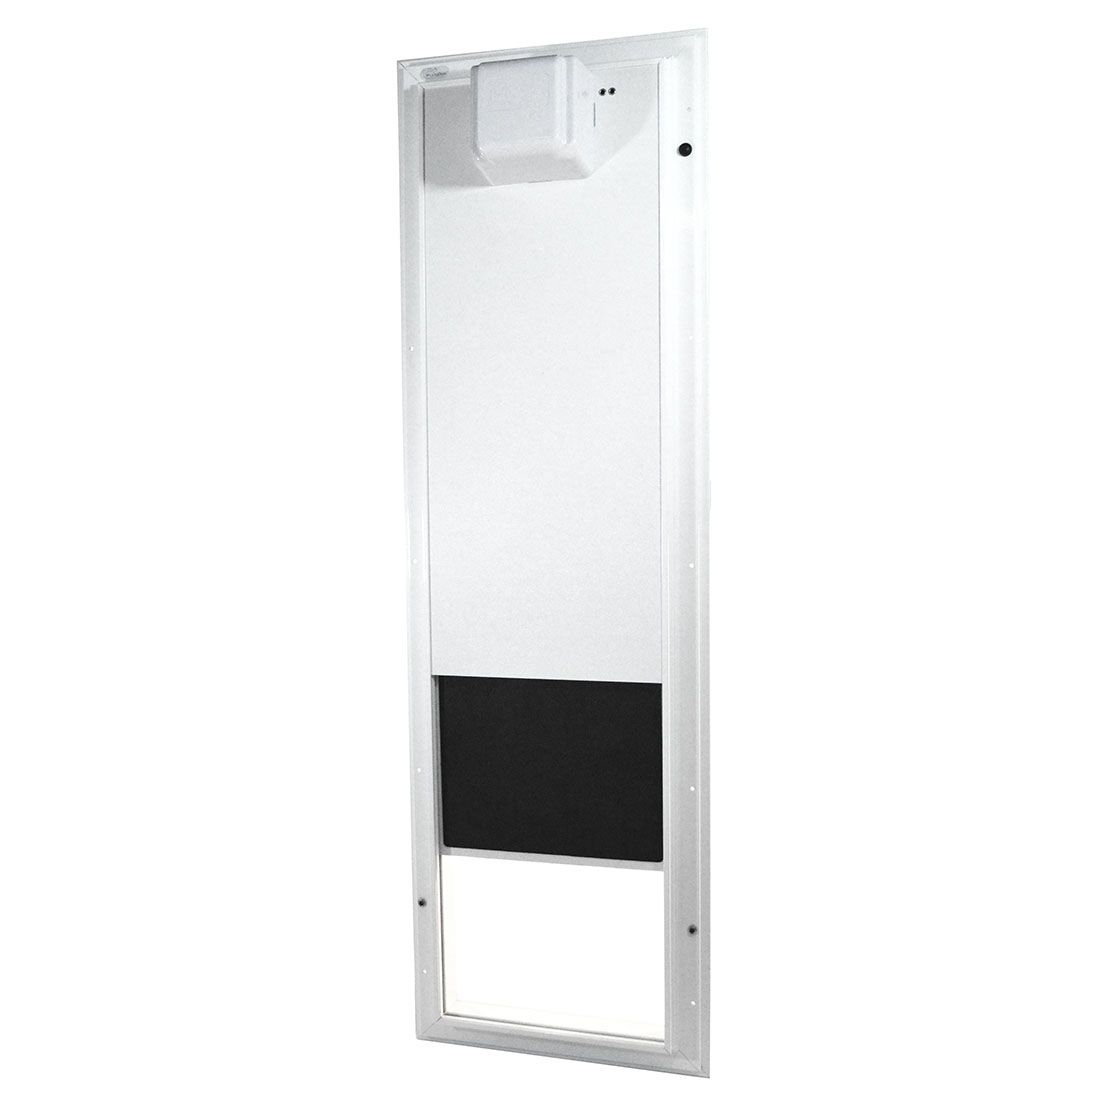 The Plexidor Electronic Motorized Dog Door Automatically Opens In